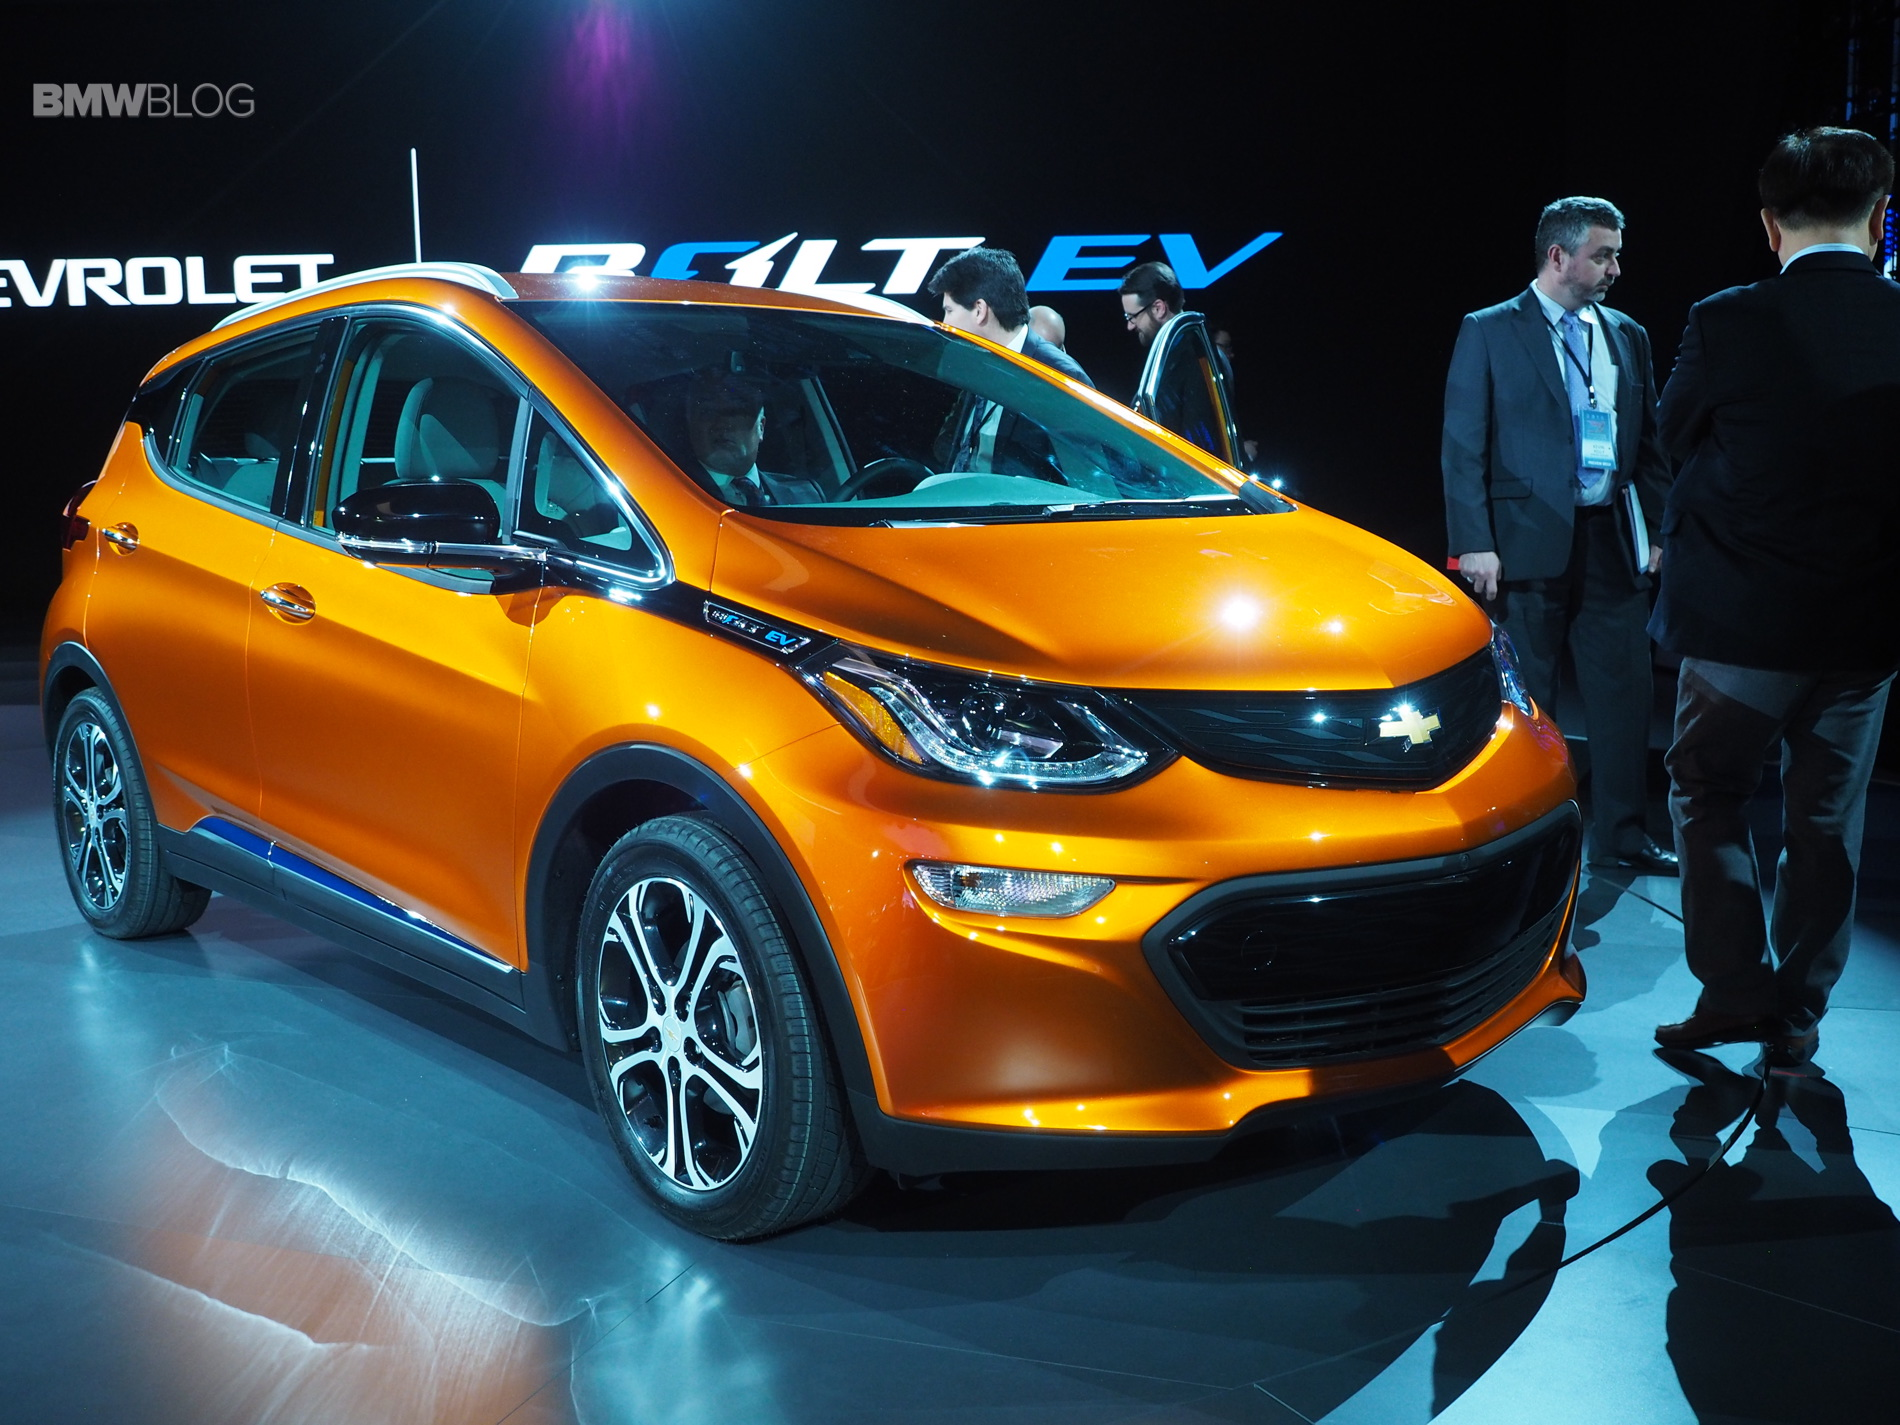 2016 NAIAS: Chevy Bolt makes its auto show debut